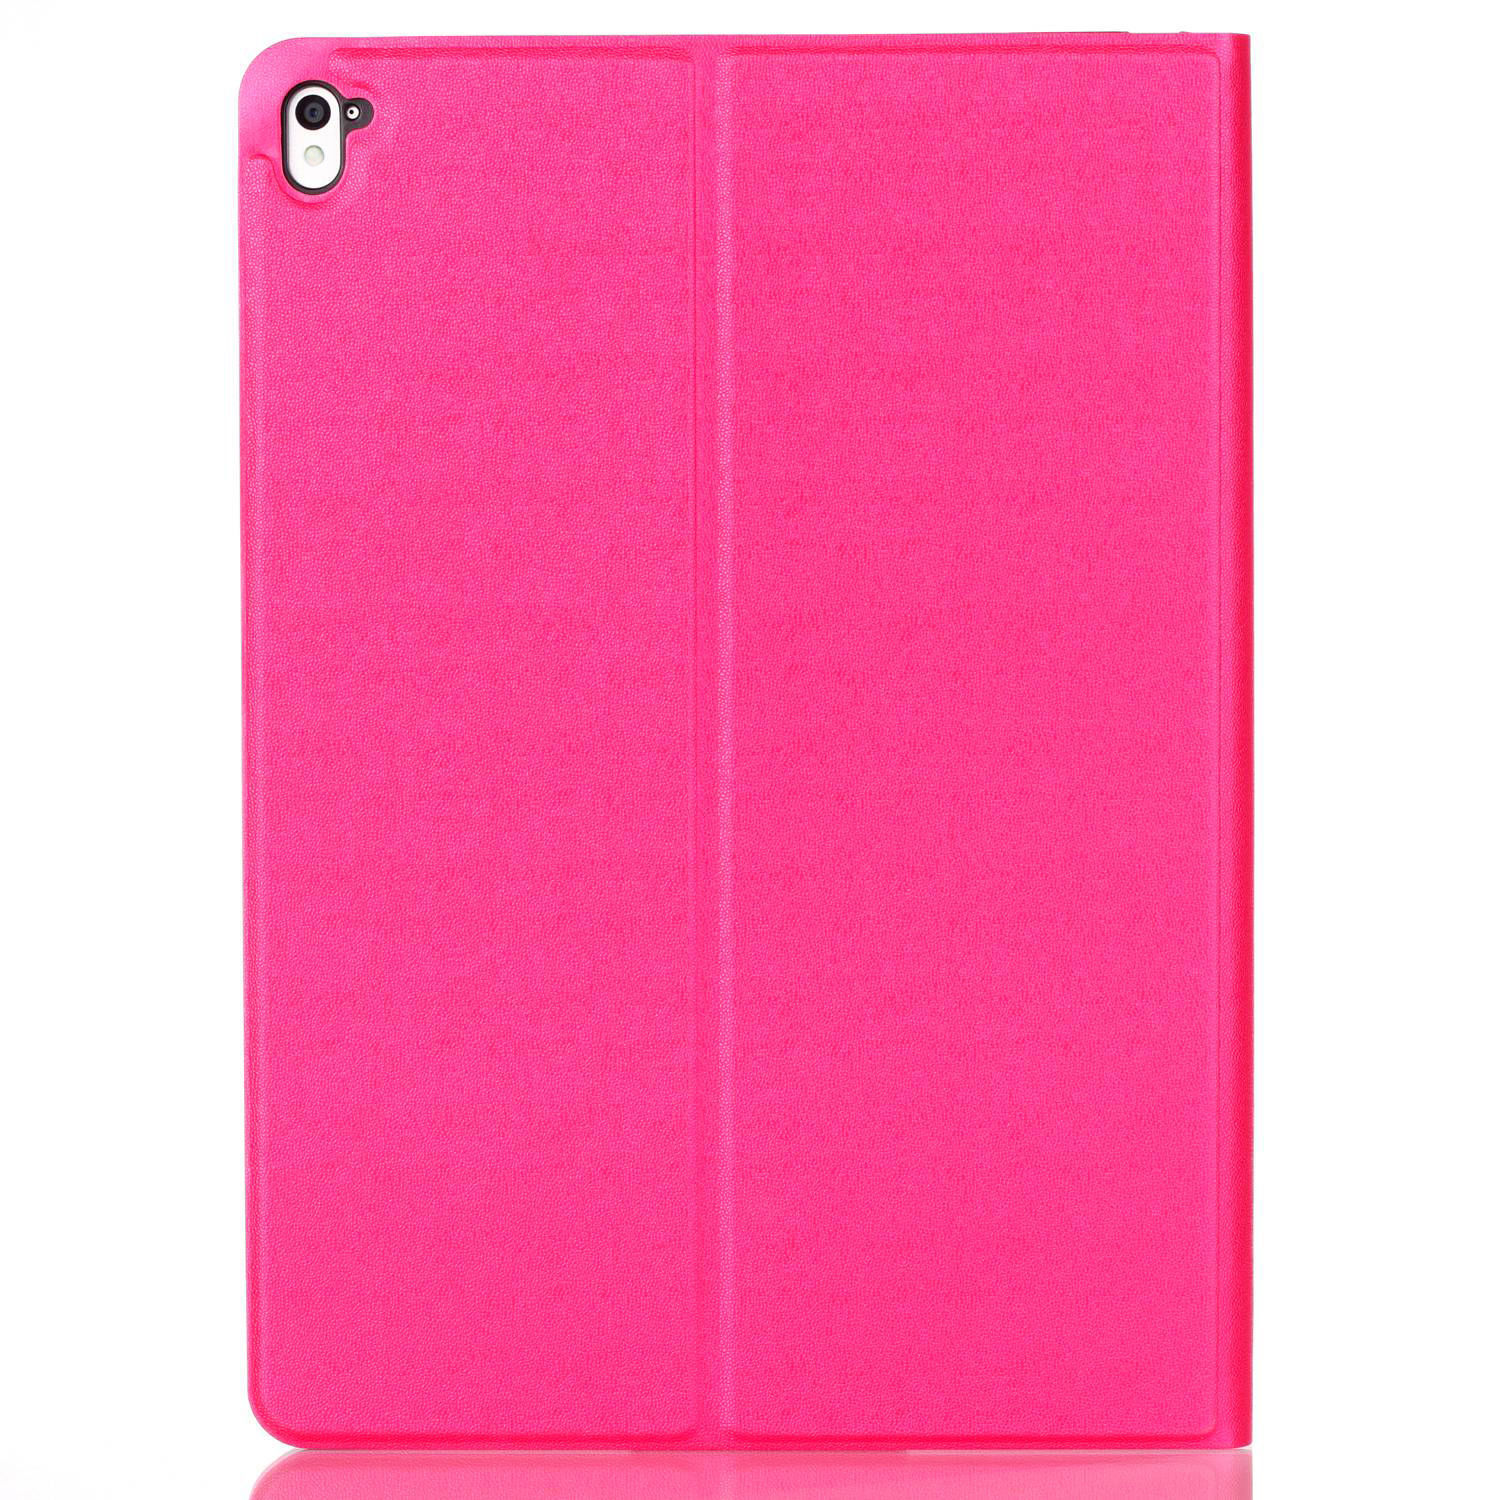 Custodia-Per-Apple-IPAD-Pro-IN-9-7-Pollici-Case-Cover-Protettiva-Skin-Shell miniatura 36